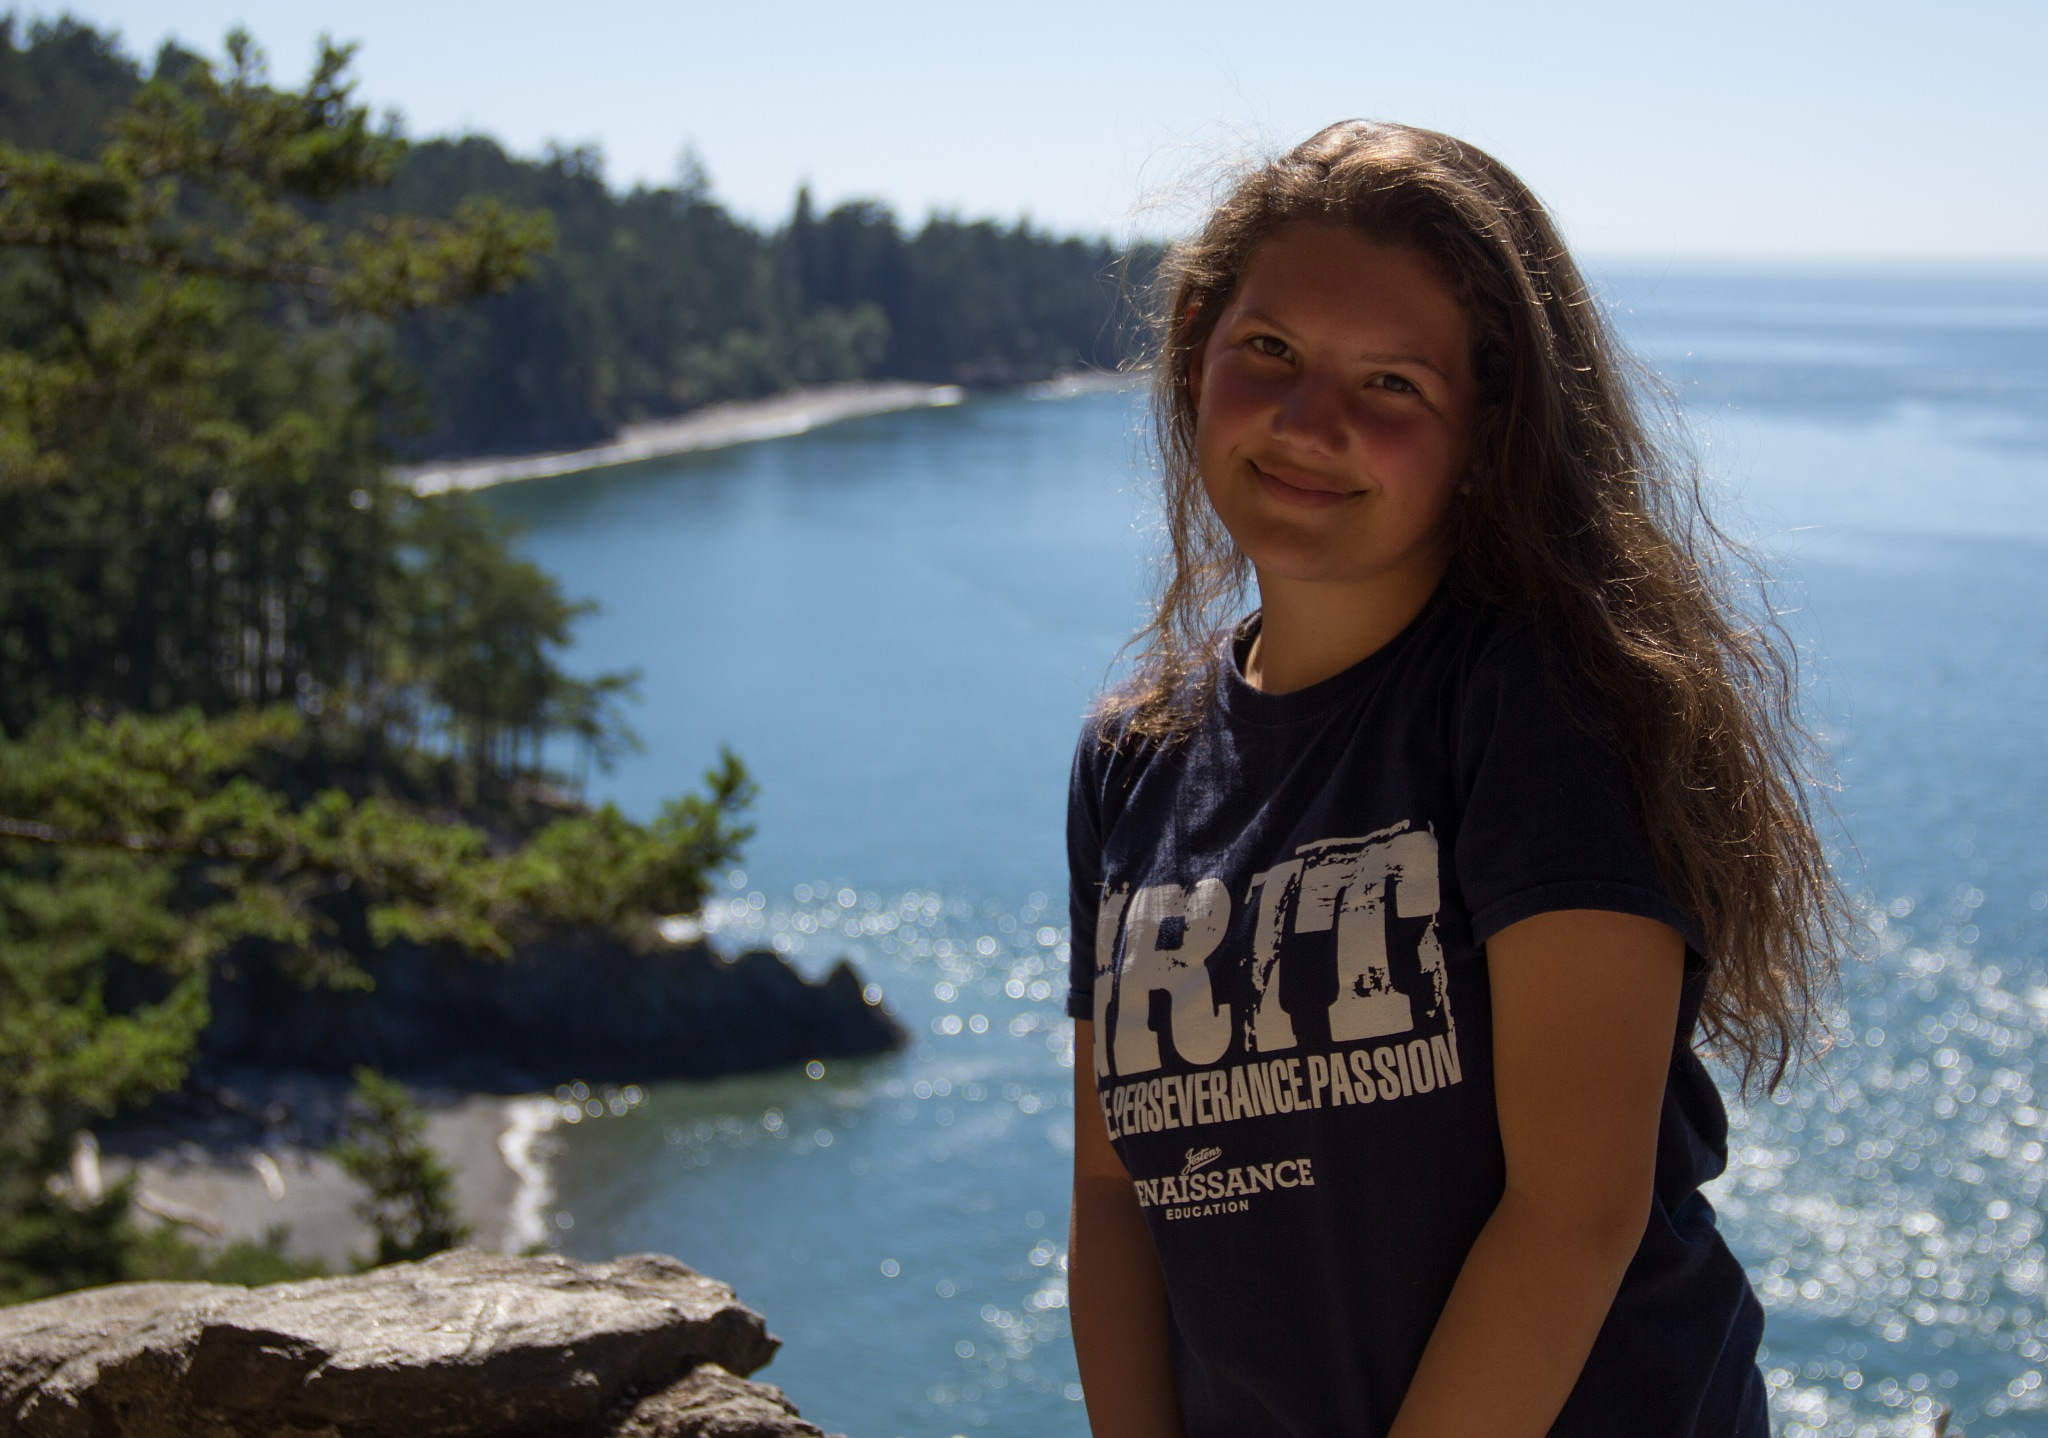 Shelby at Deception Pass by karlbishop6